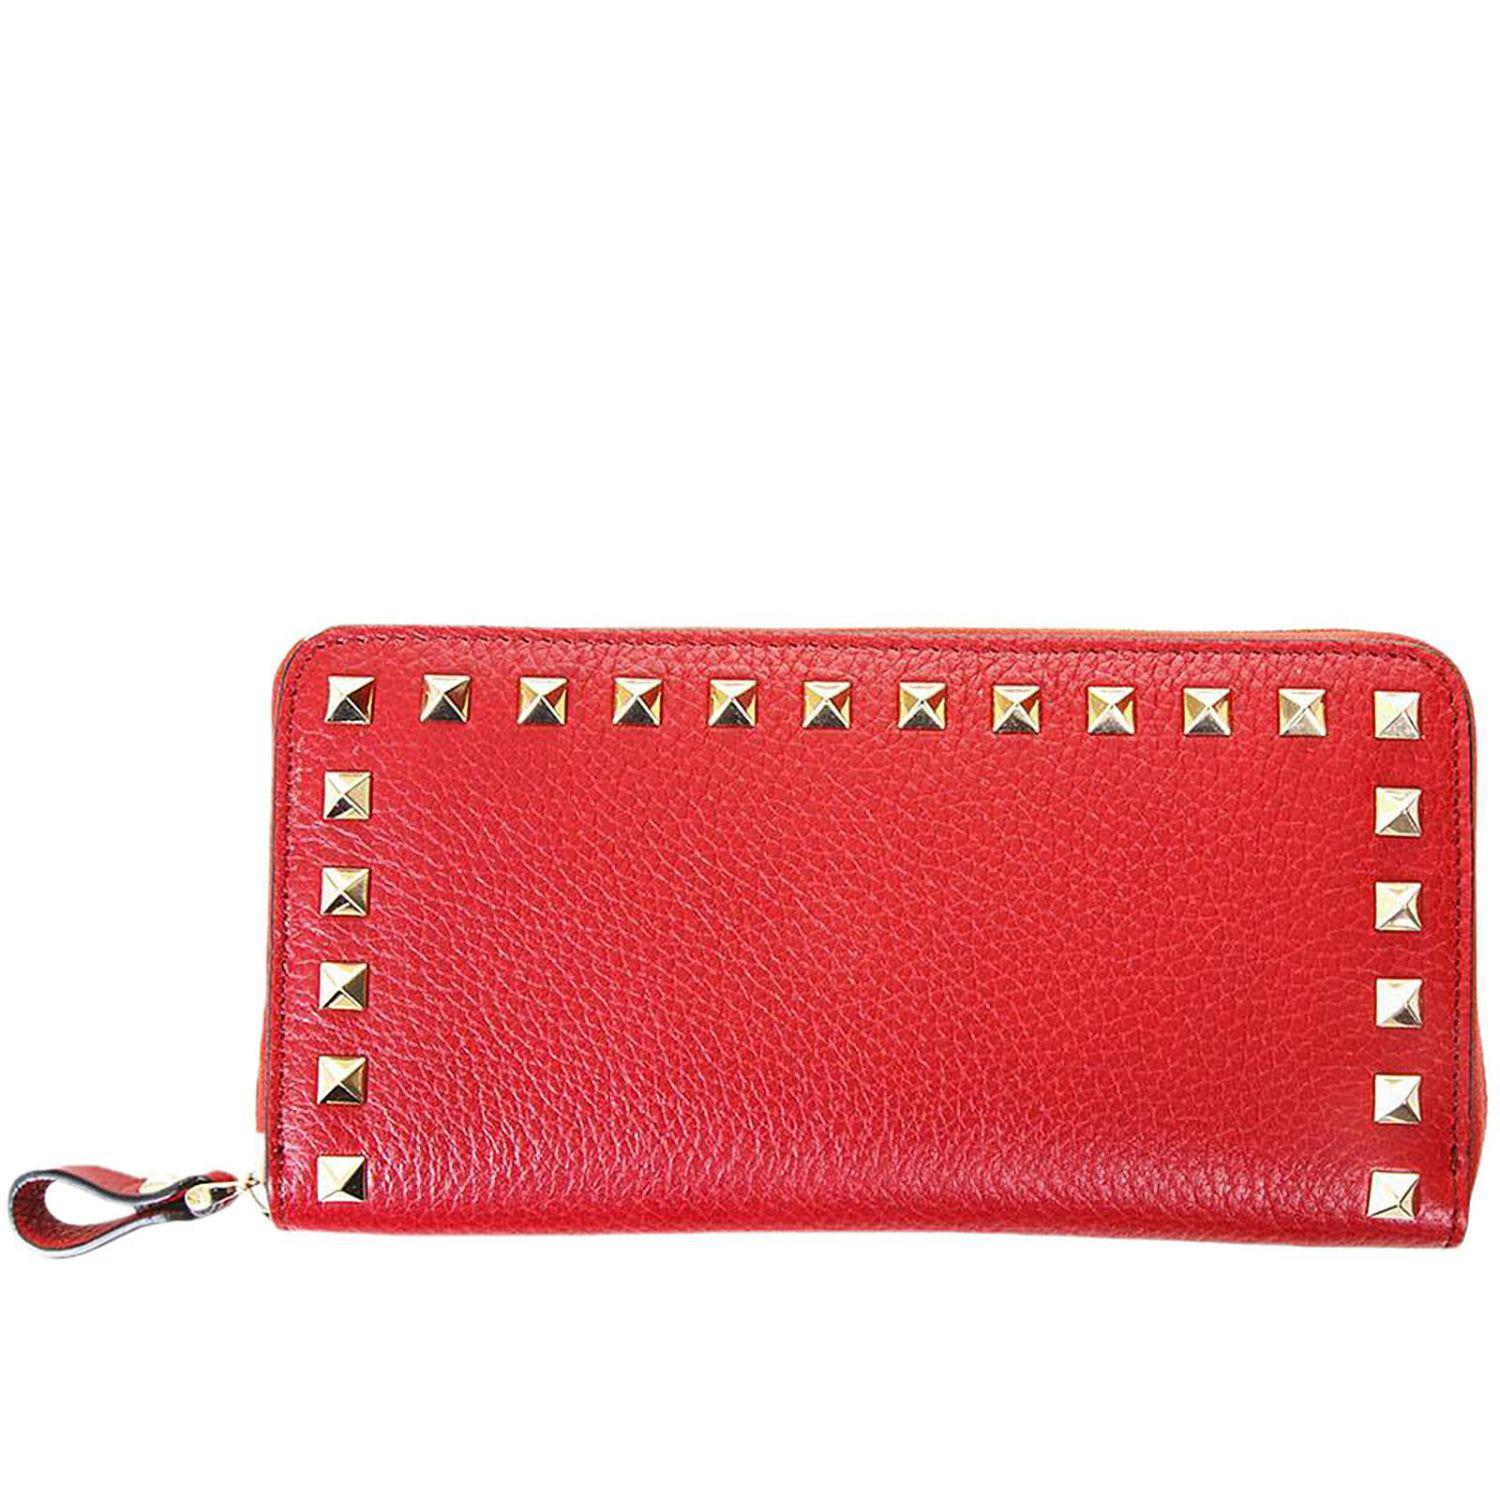 Rockstud Spike Zip Around Continental Wallet in Black Nappa Leather Valentino OxZsE5YZ2